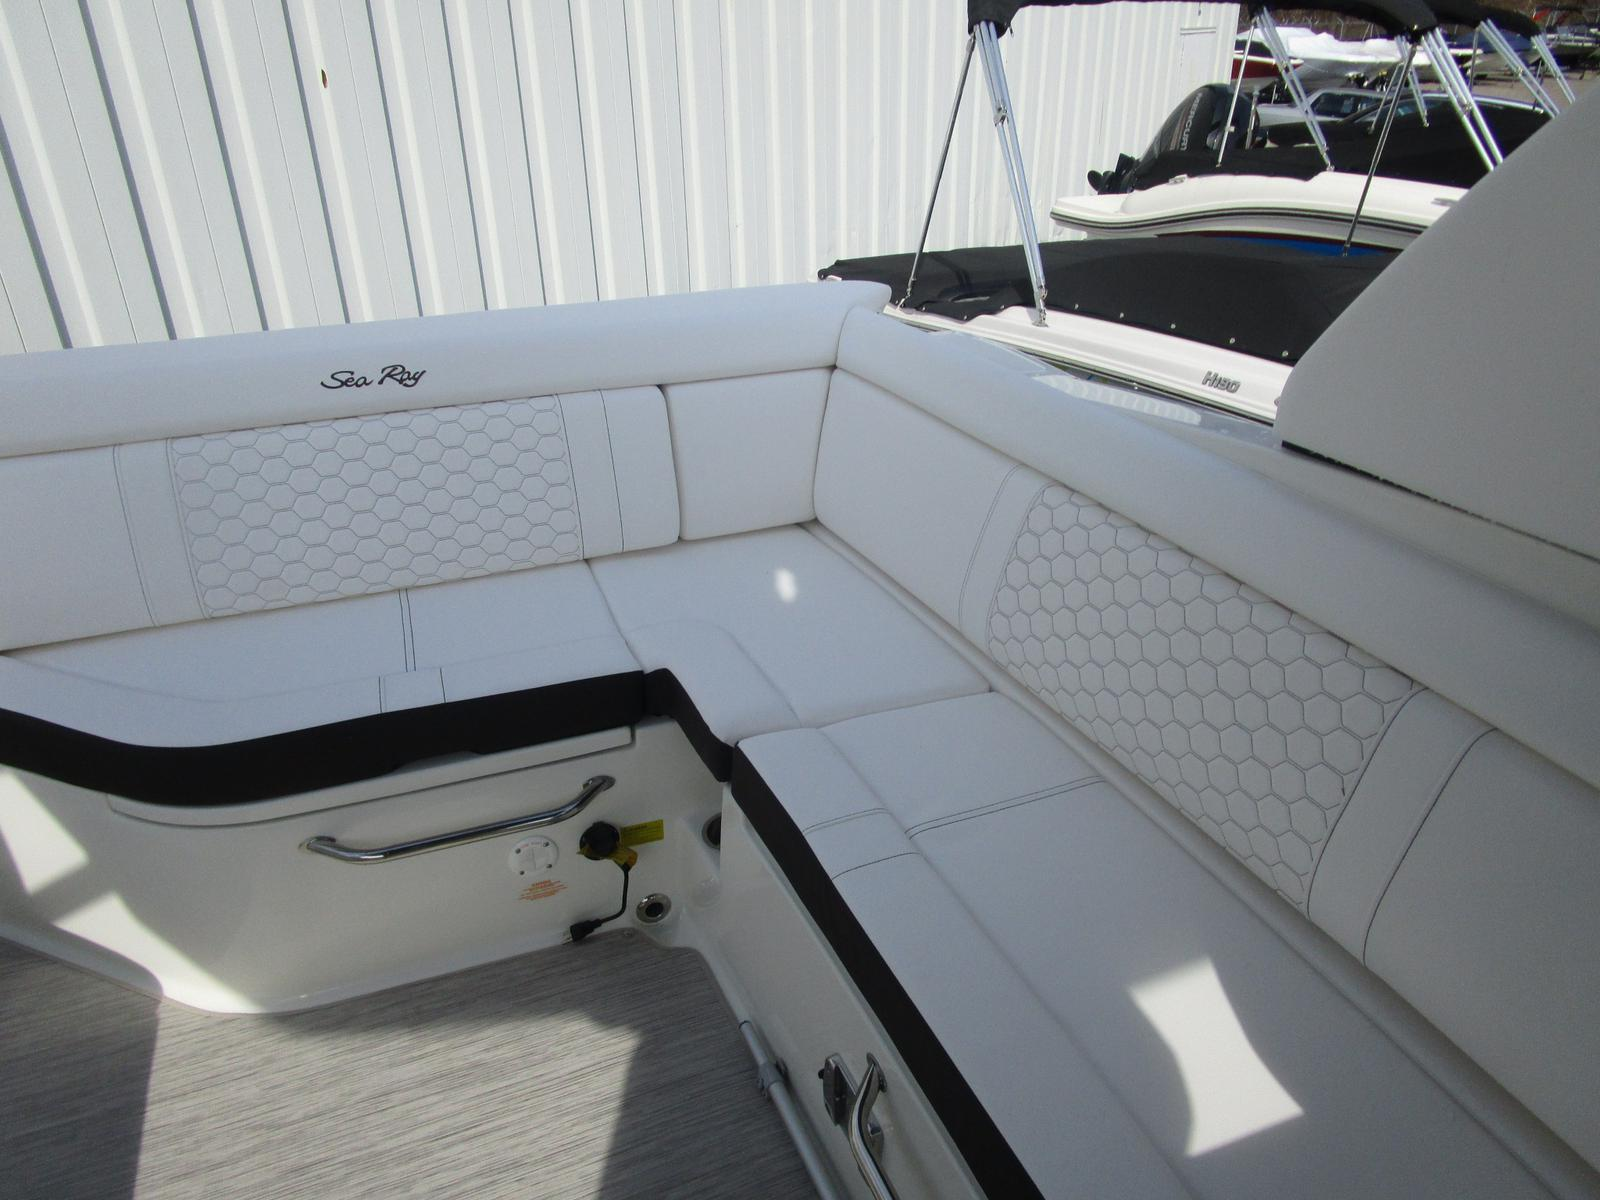 2019 Sea Ray boat for sale, model of the boat is SDX 270 & Image # 3 of 6